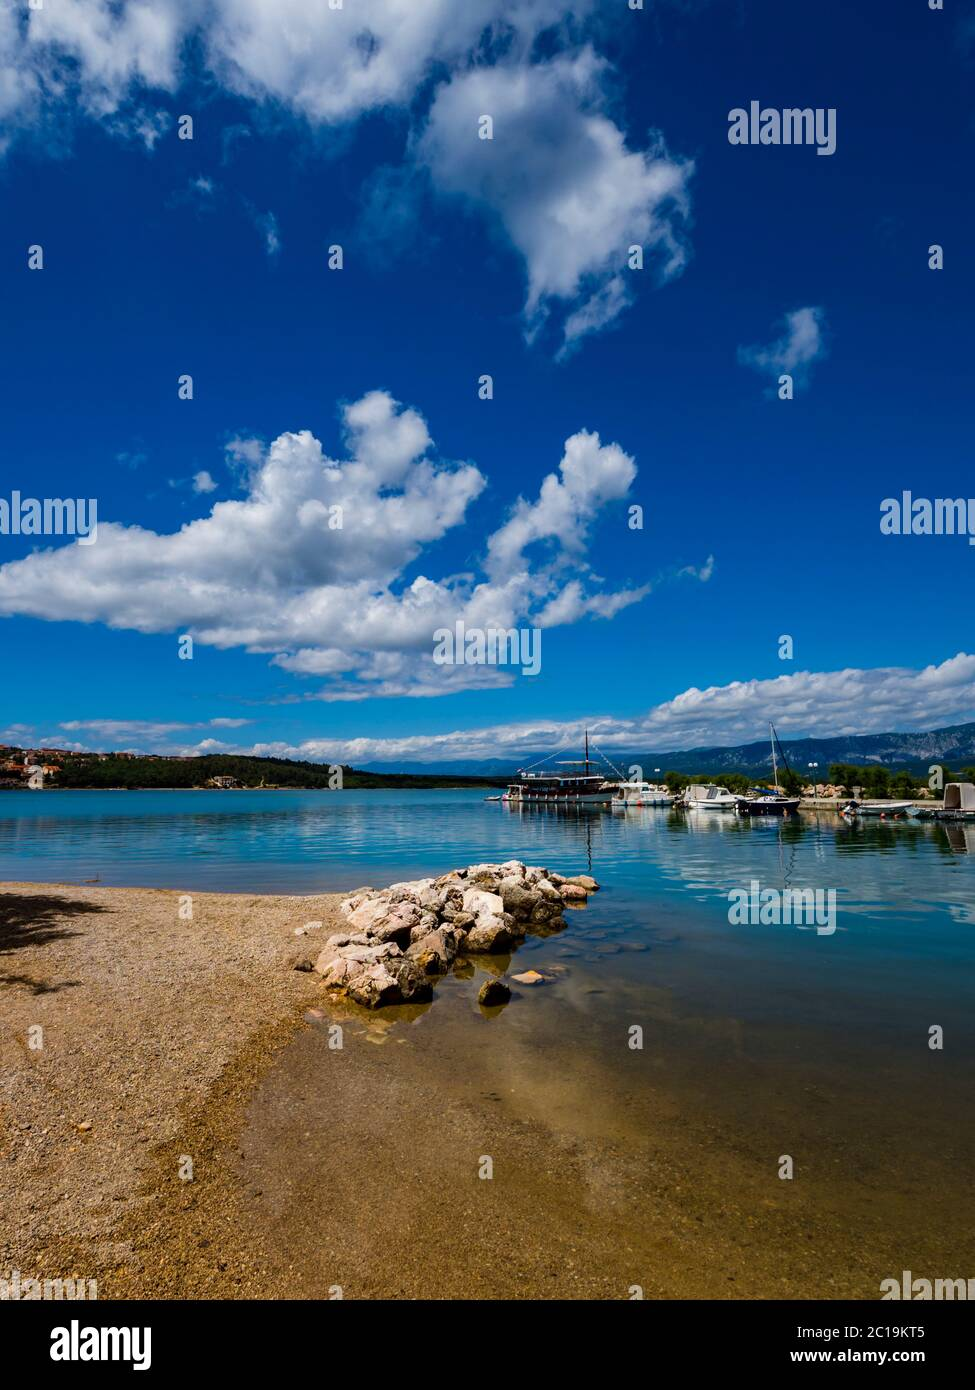 Pretty sand beach scenery in Soline on island Krk Croatia bunch of rocks protruding from sea surface immersed Summer clouds reflected in water Stock Photo